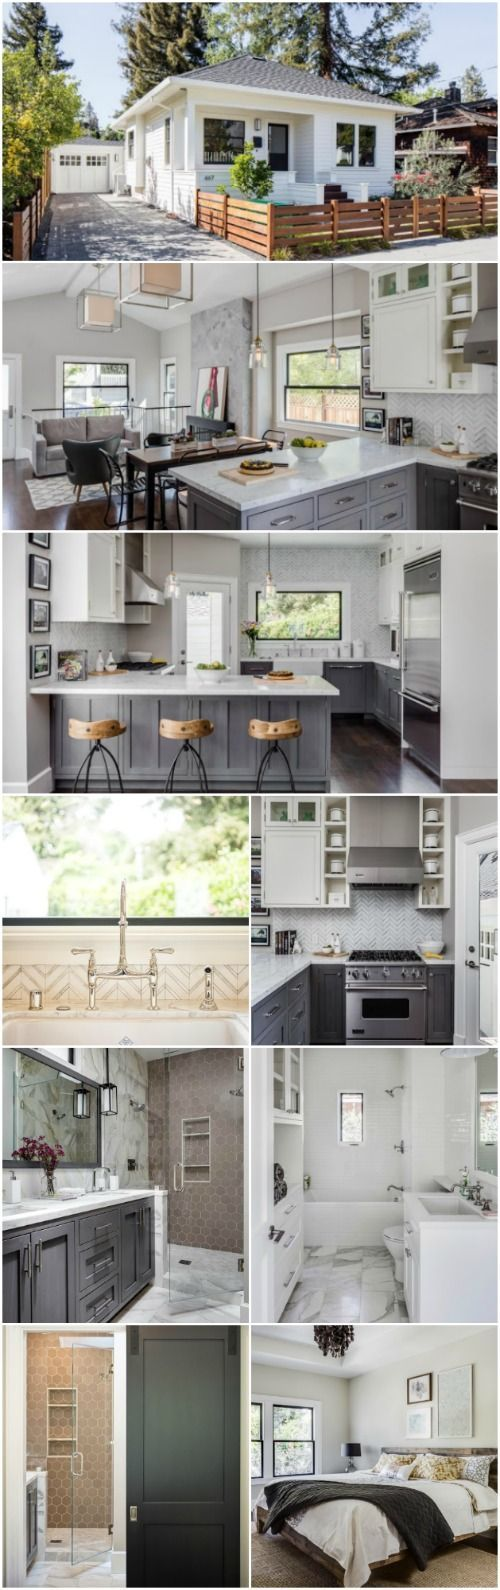 Interior design ideas for very small homes - Californian Interior Designer Designs Dreamy Tiny House In Napa Valley